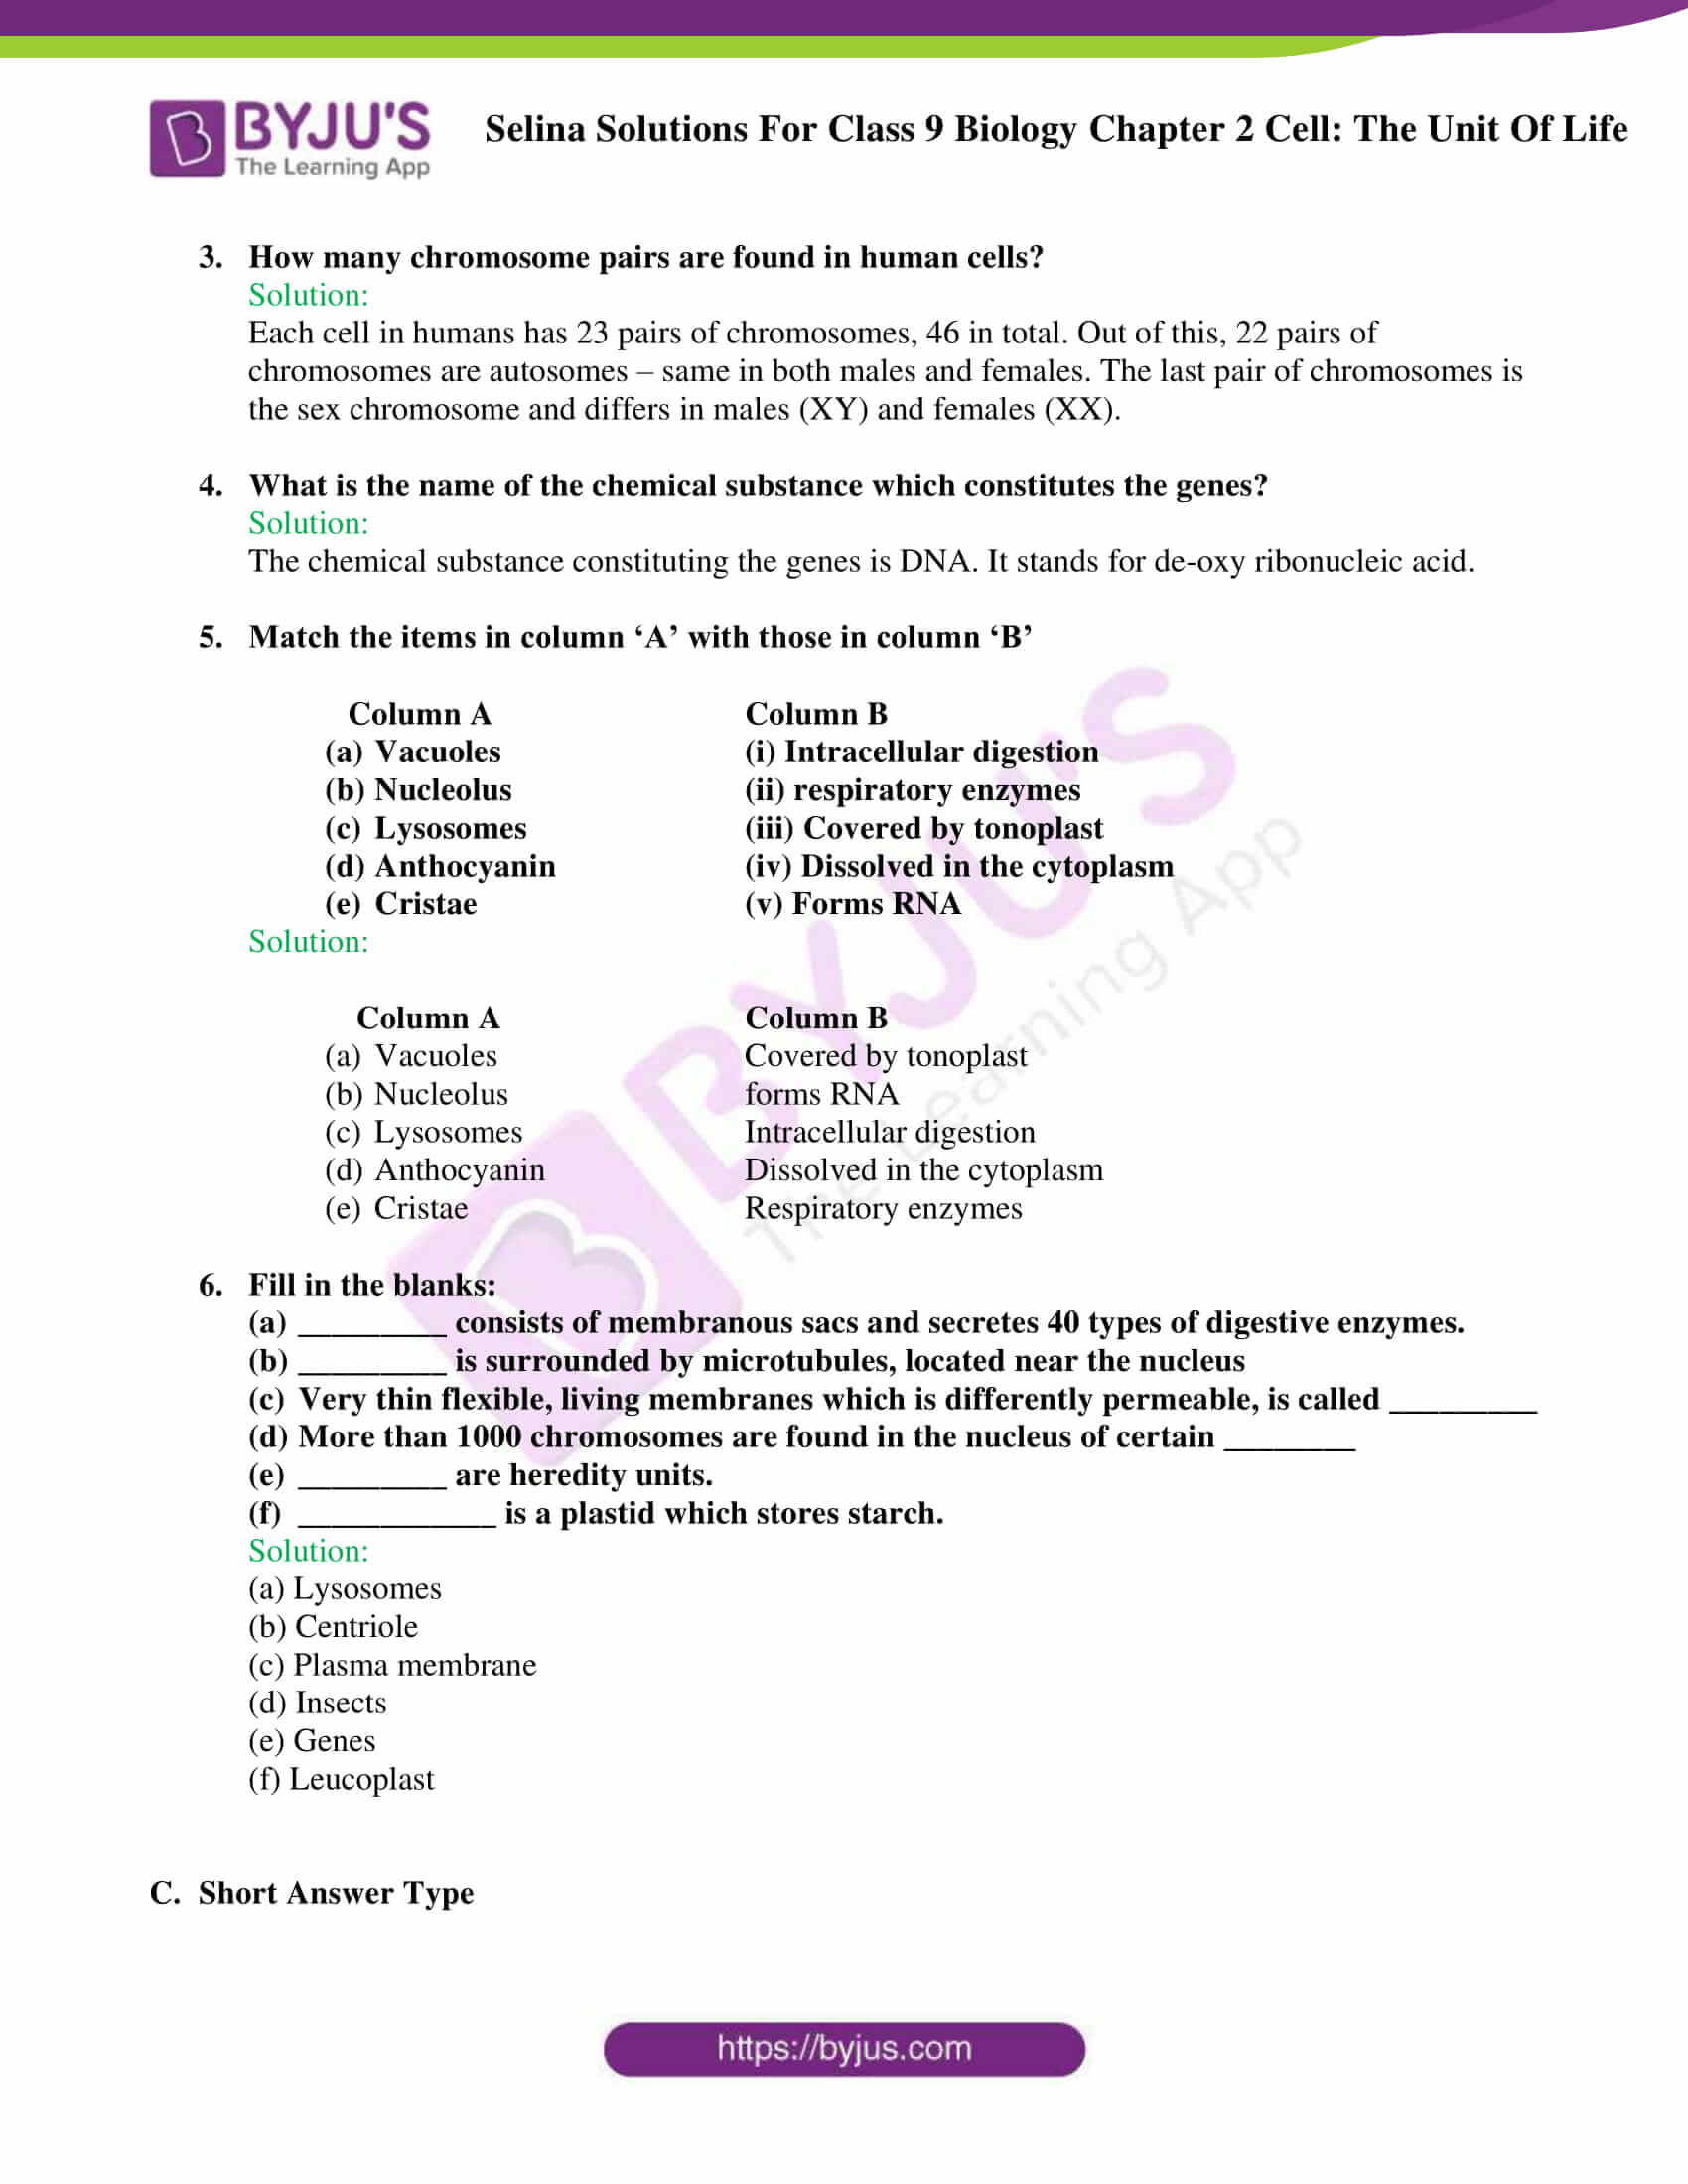 Selina Solutions For Class 9 Biology Chapter 2 Cell The Unit Of Life part 09